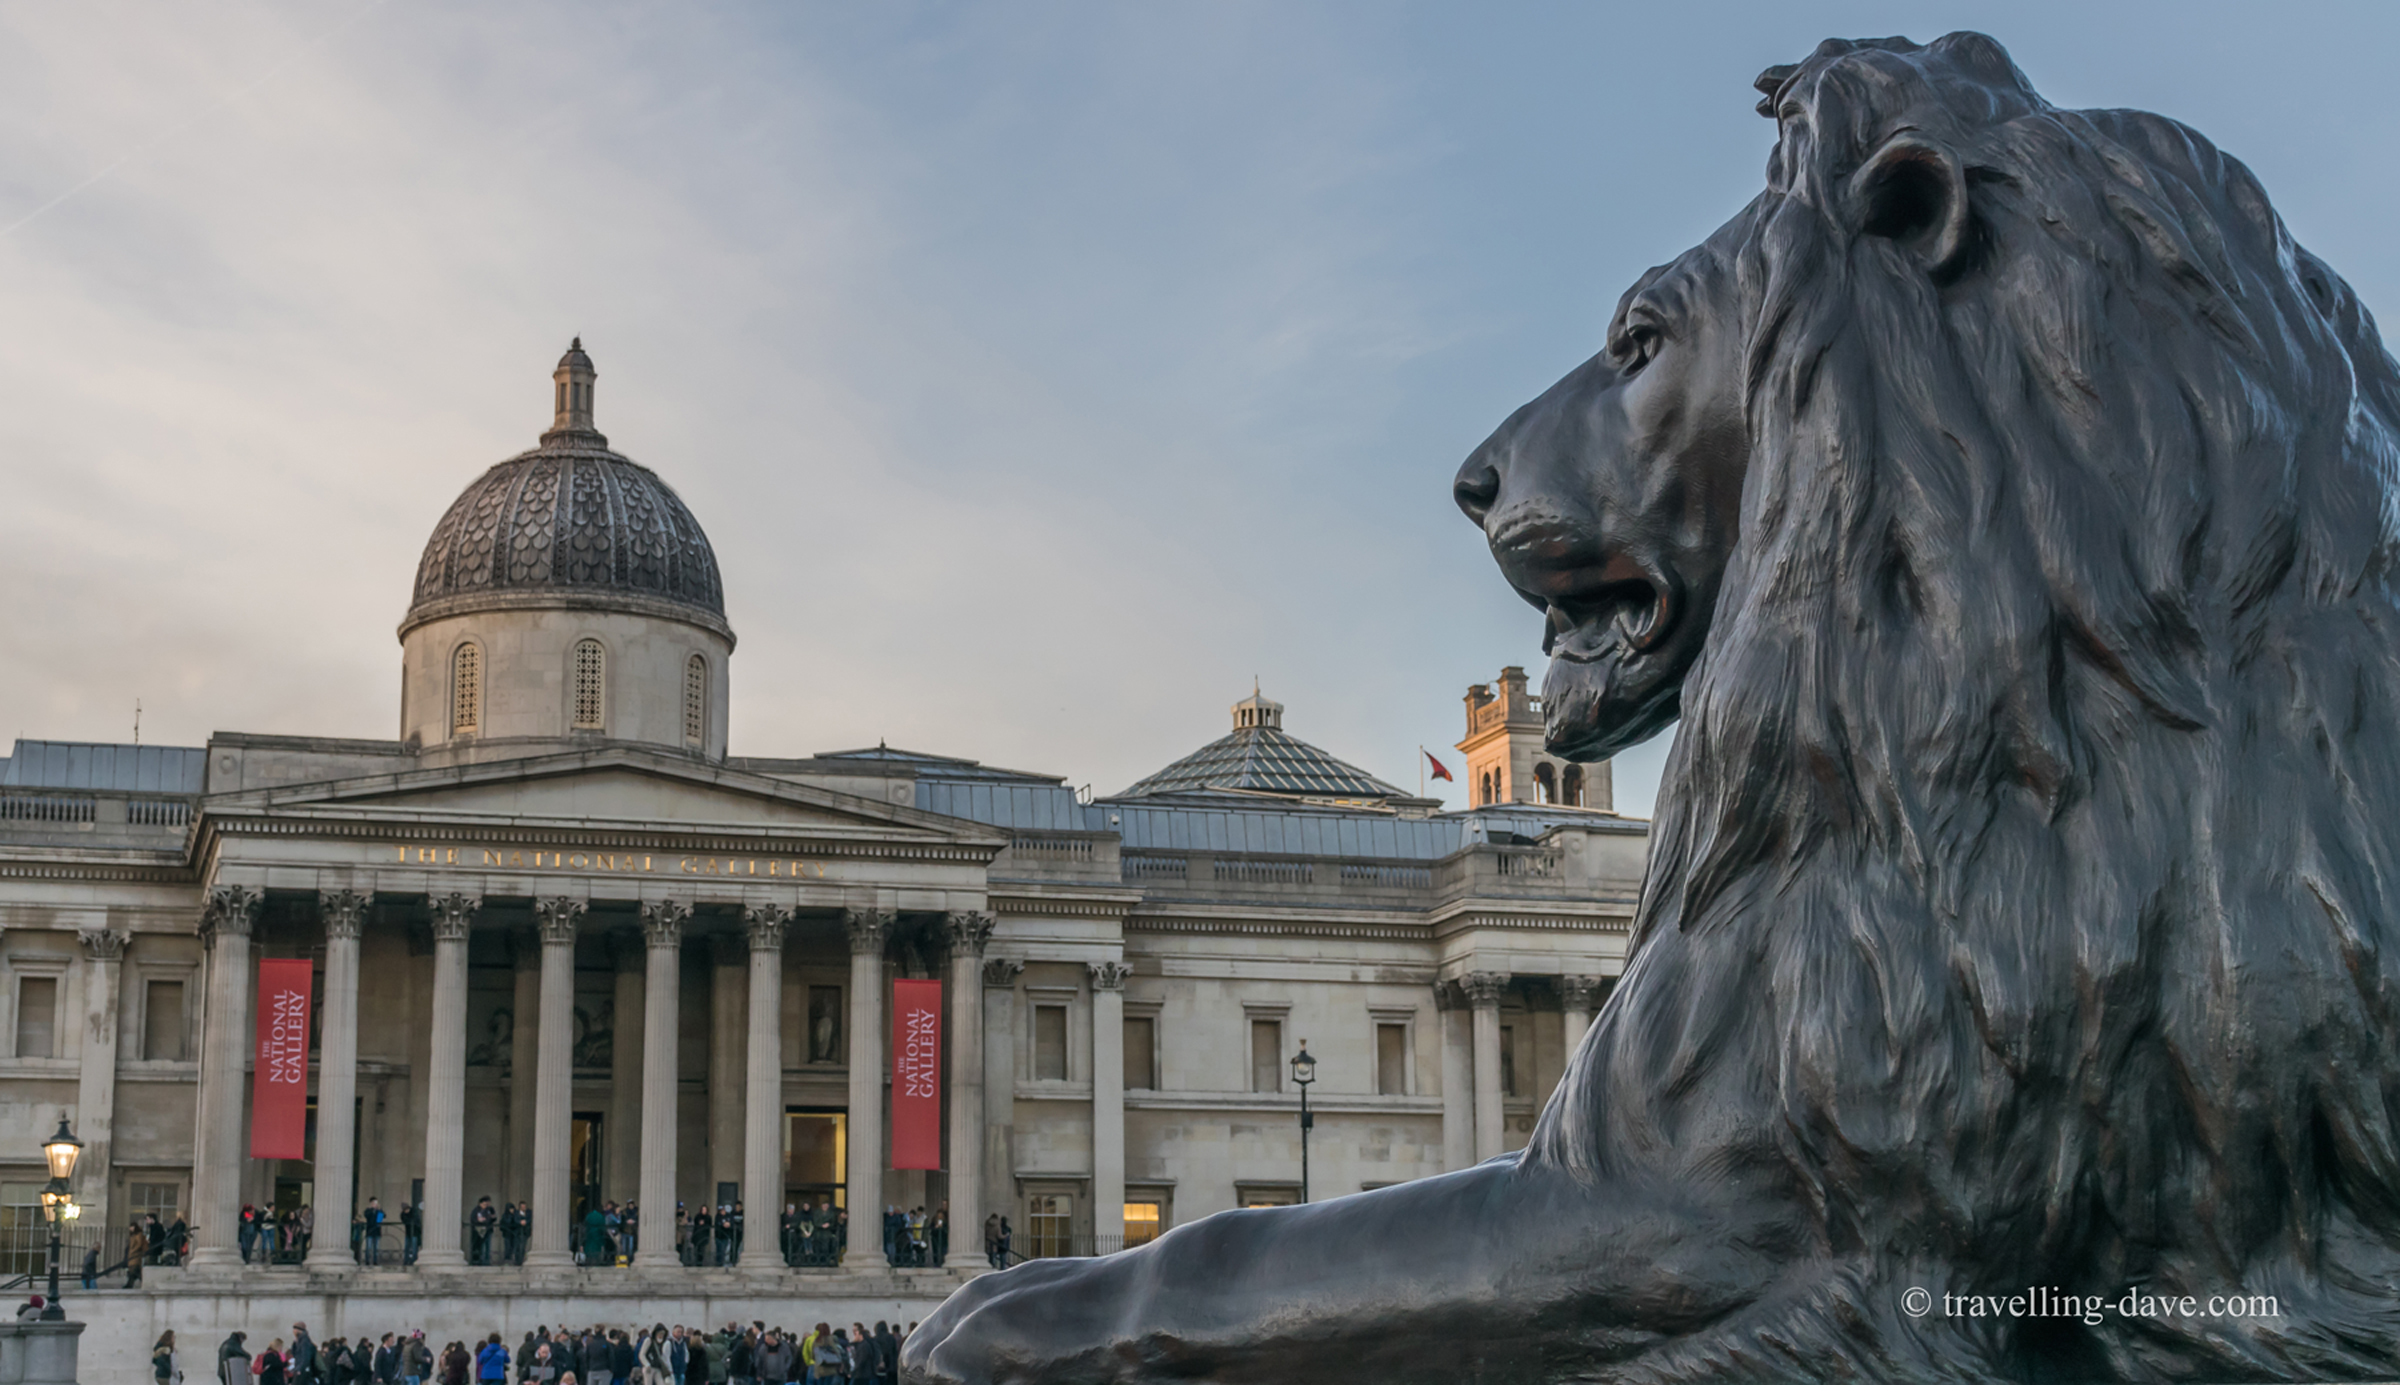 View of one of the lion statues and the National Gallery in London's Trafalgar Square